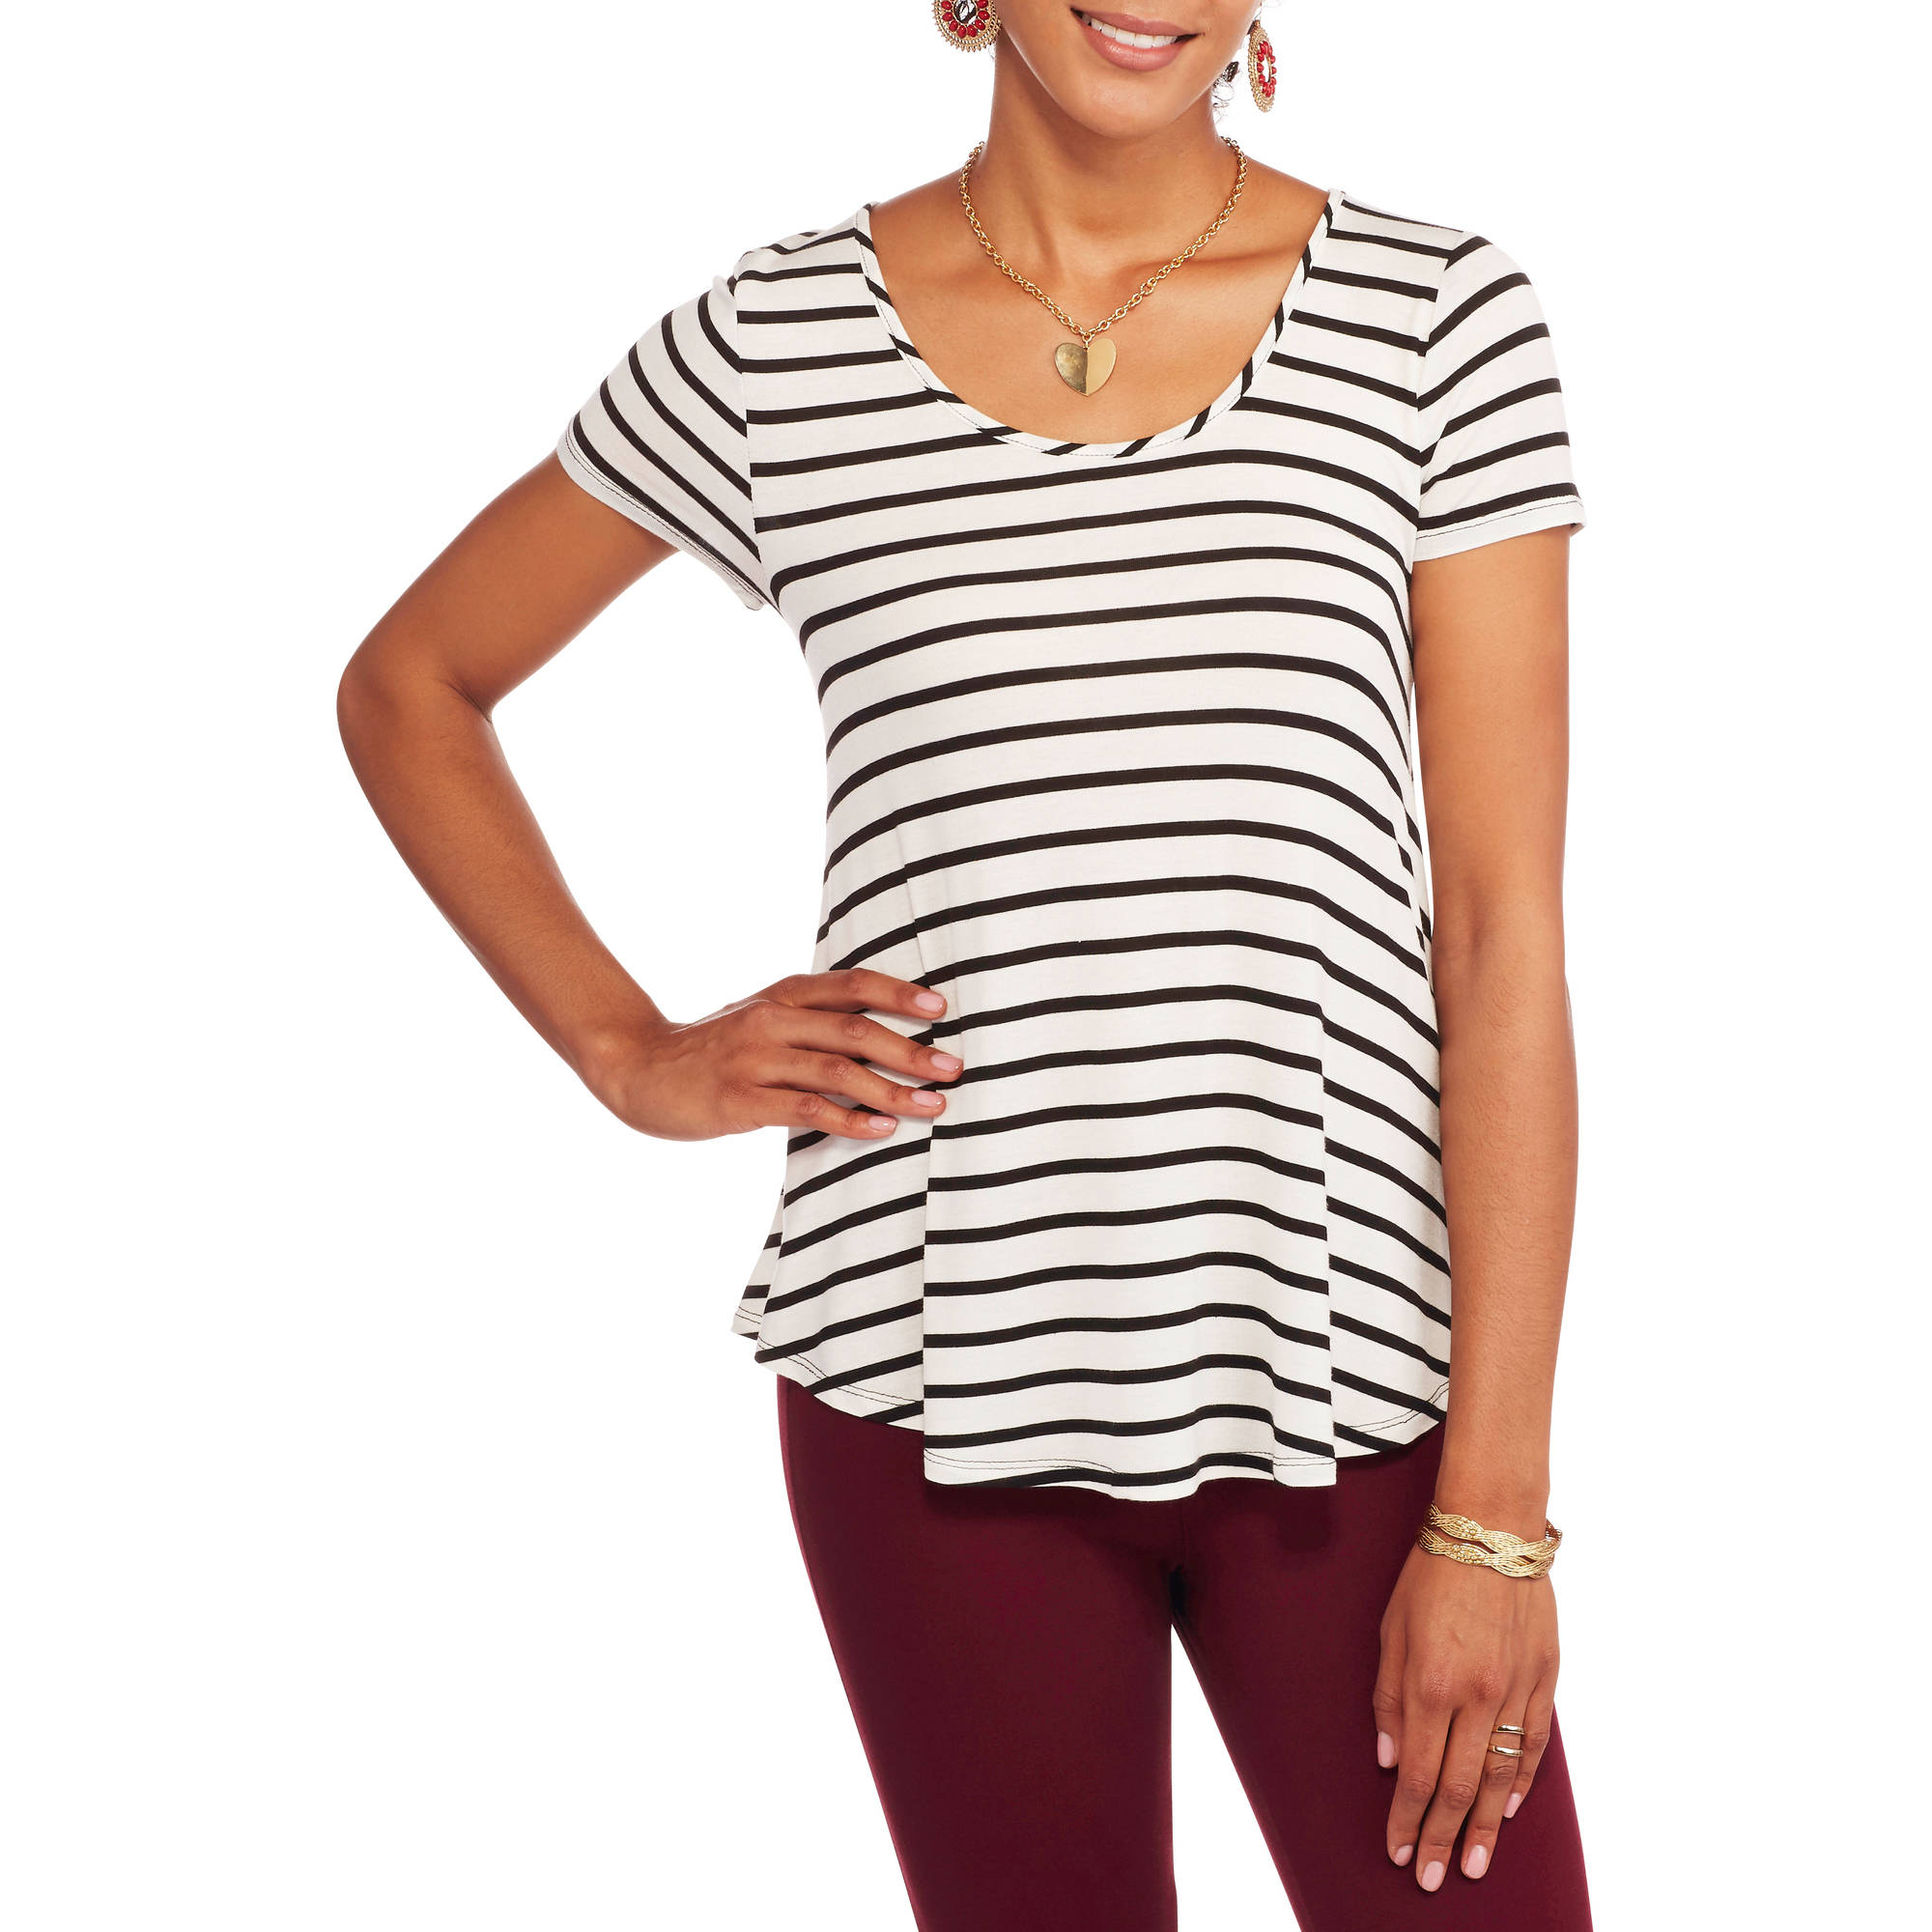 Women's Relaxed Fit Crewneck T-Shirt